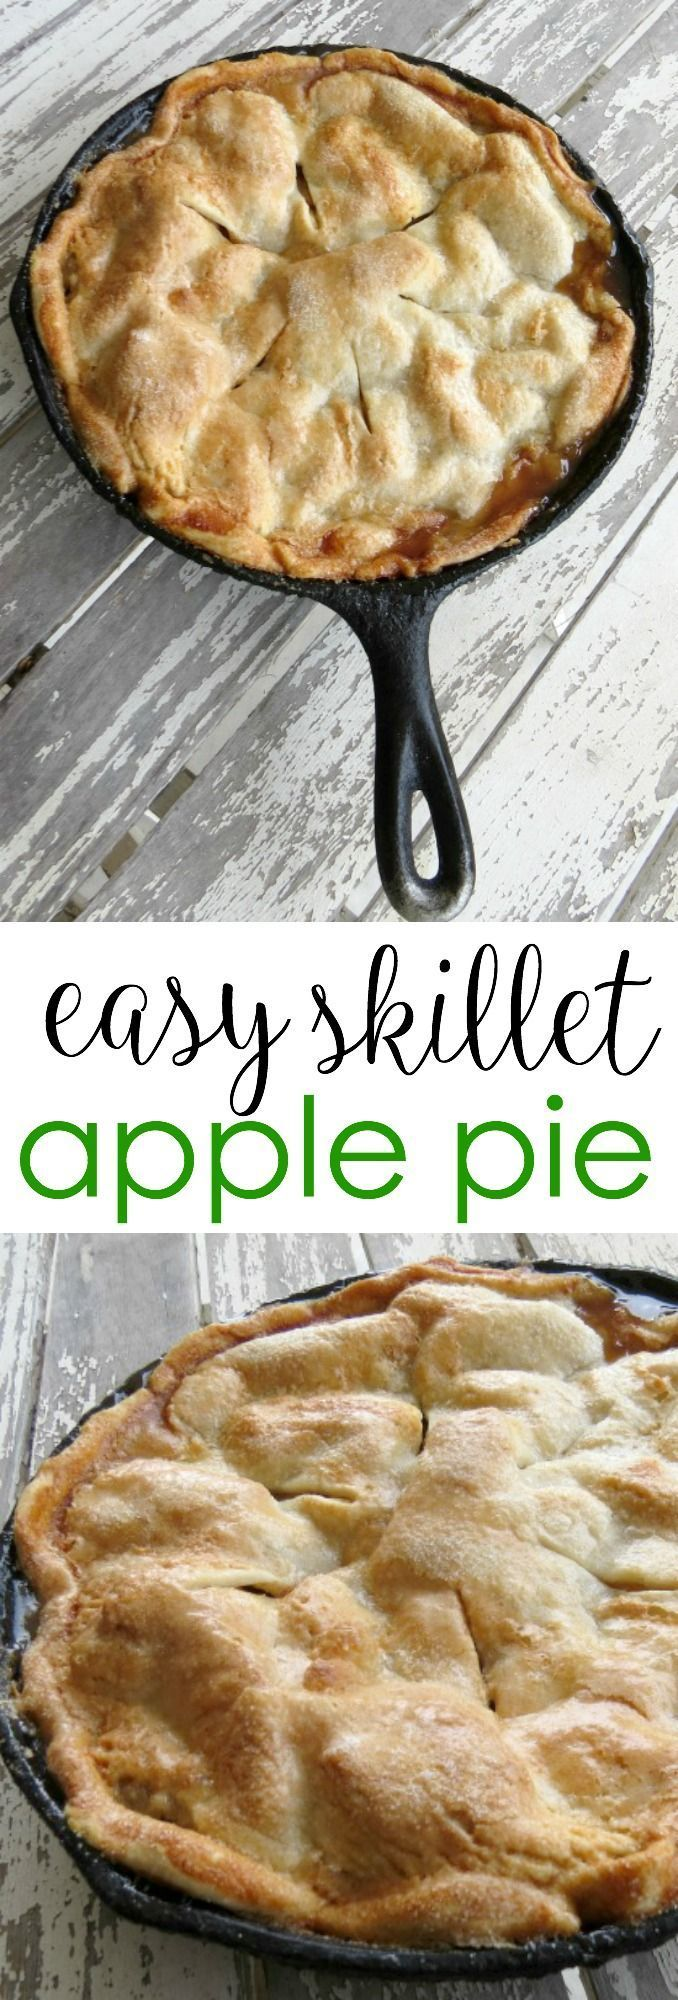 Surprise your family with this easy skillet apple pie recipe tonight! It's loaded with sliced apples and covered in a flaky crust.  skillet desserts